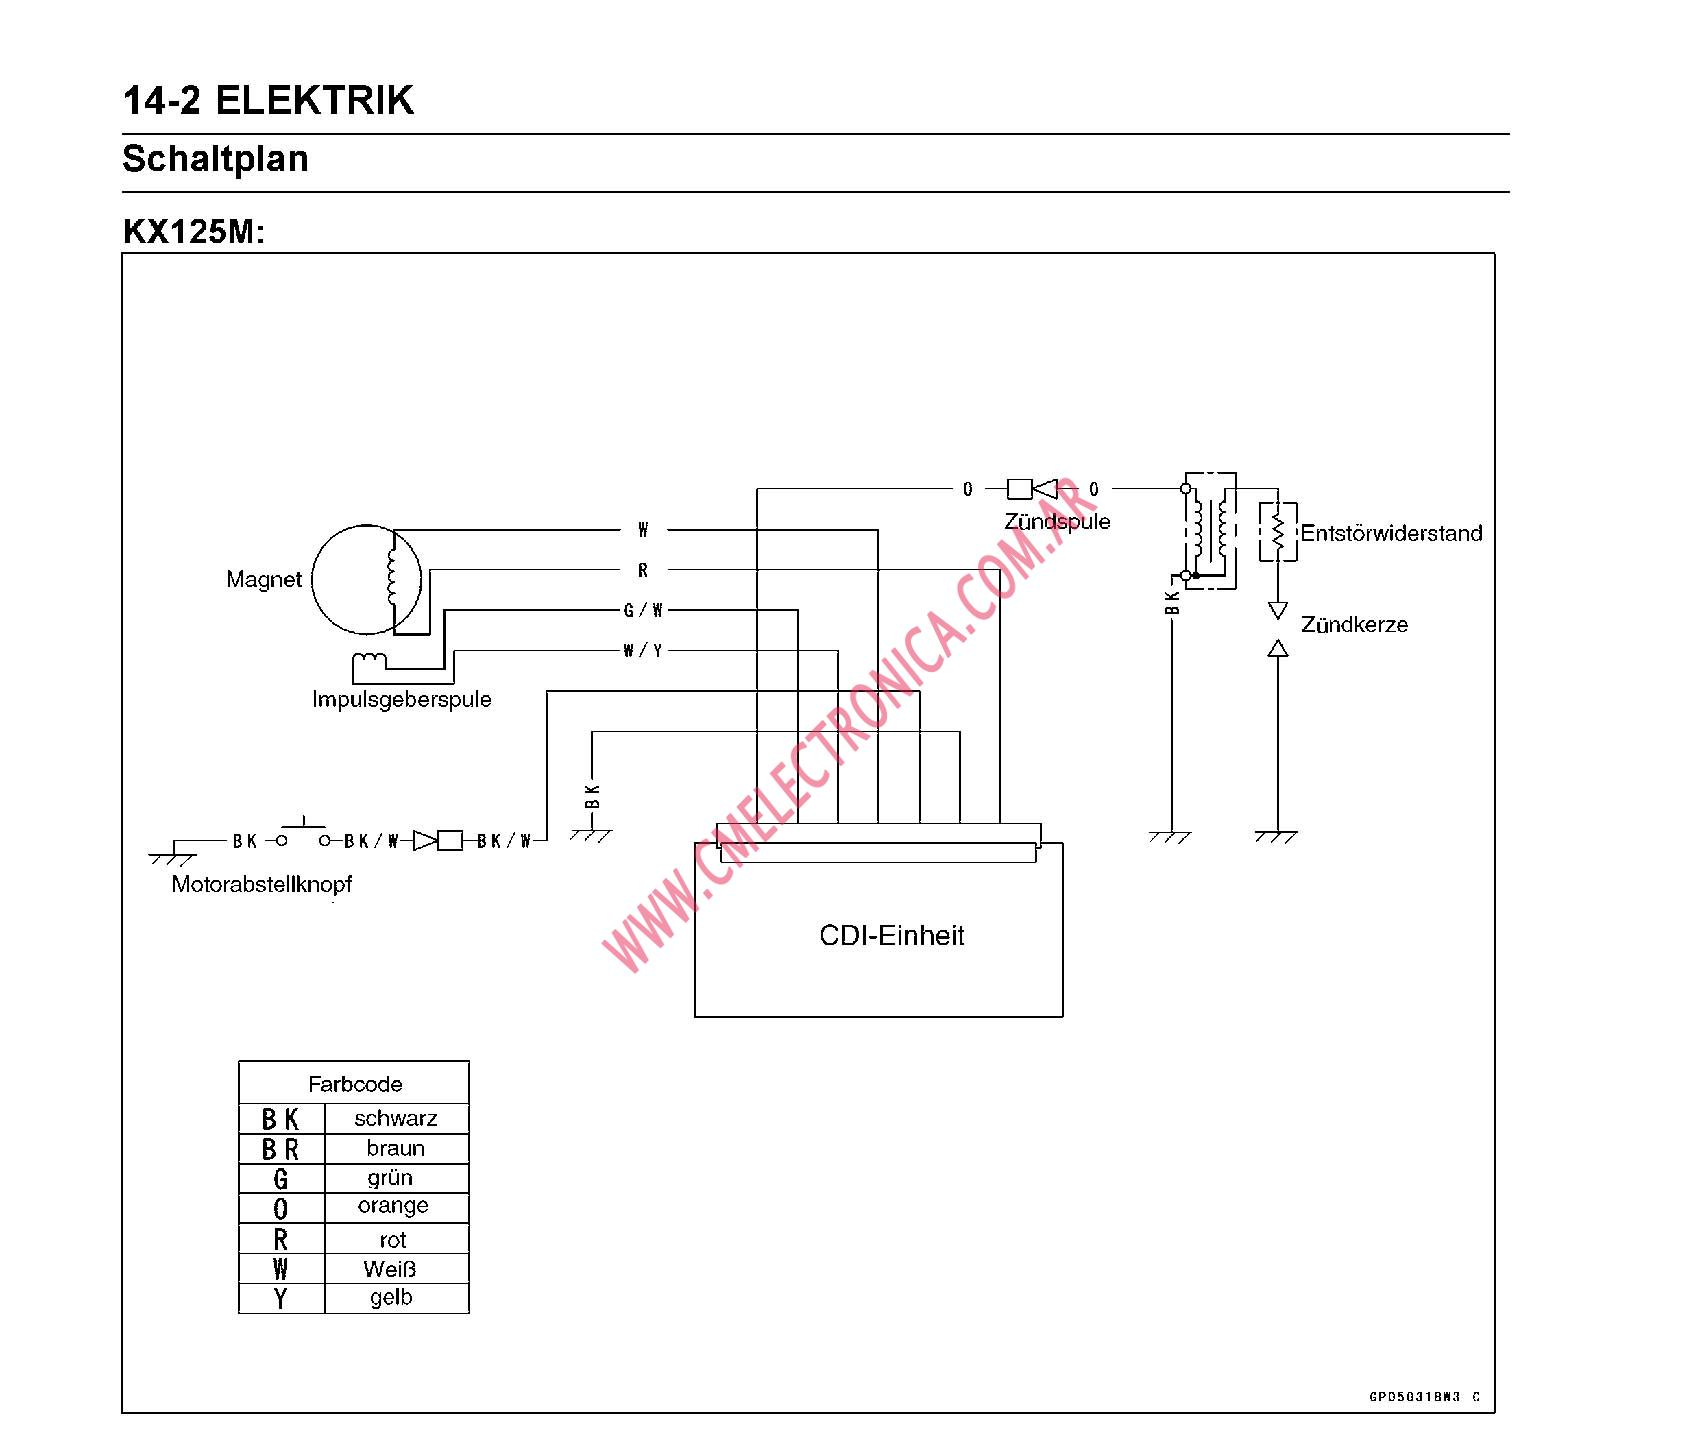 Kawasaki Ar 125 Wiring Diagram Portal Ex250 Diagrama Kx125 Kx250 Rh Cmelectronica Com Fc540v Replacement Engine